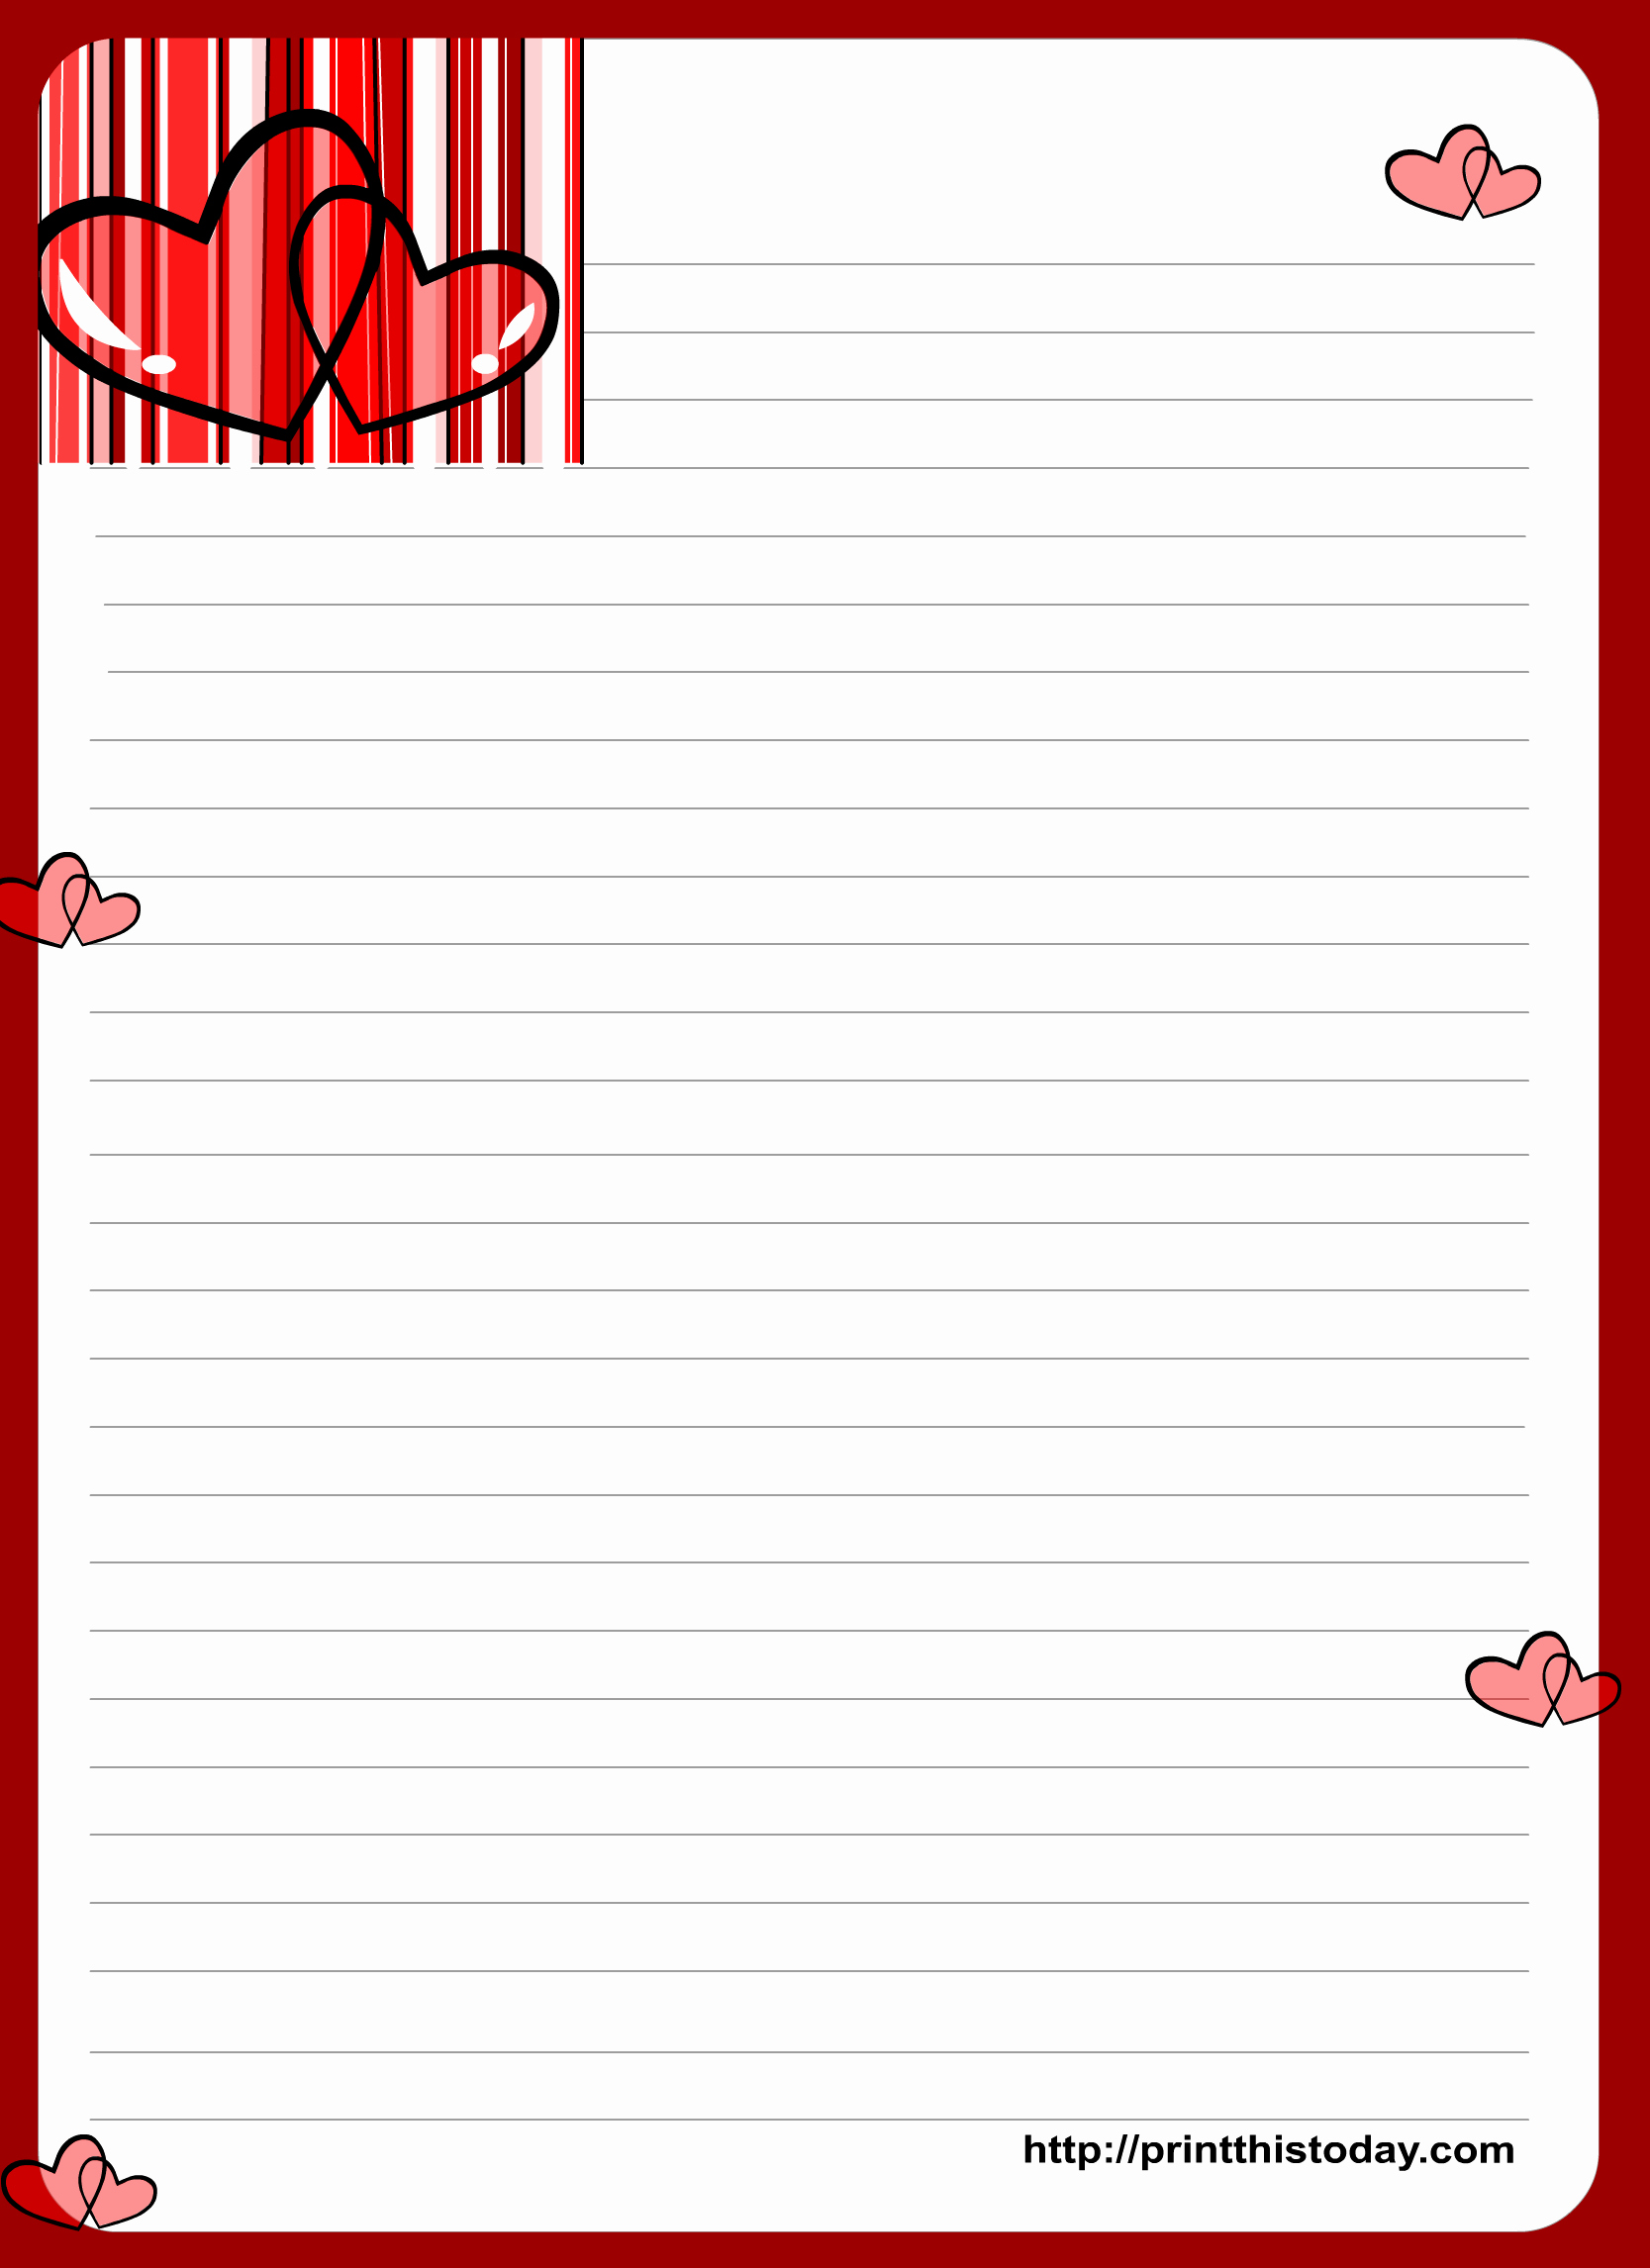 Free Printable Writing Paper Unique Love Letter Writing Paper with Hearts